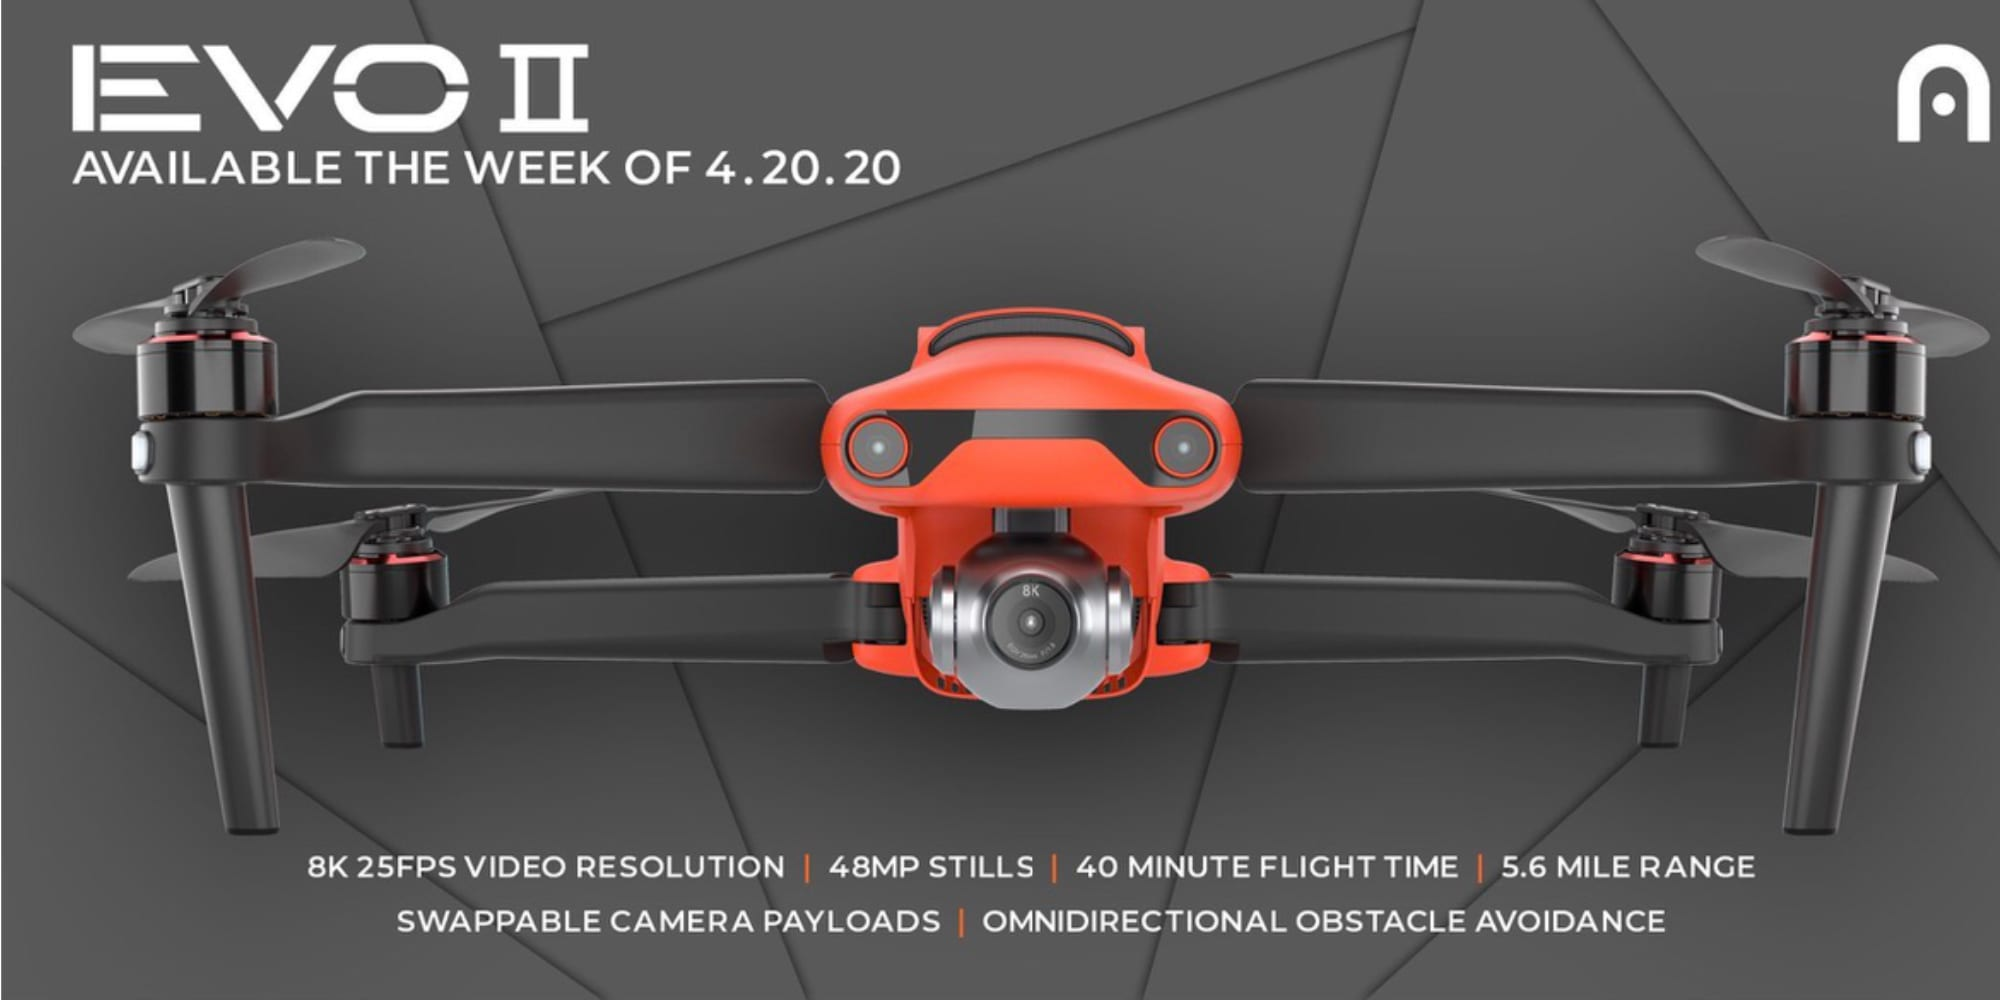 Autel EVO II available in the week of April 20th, 2020